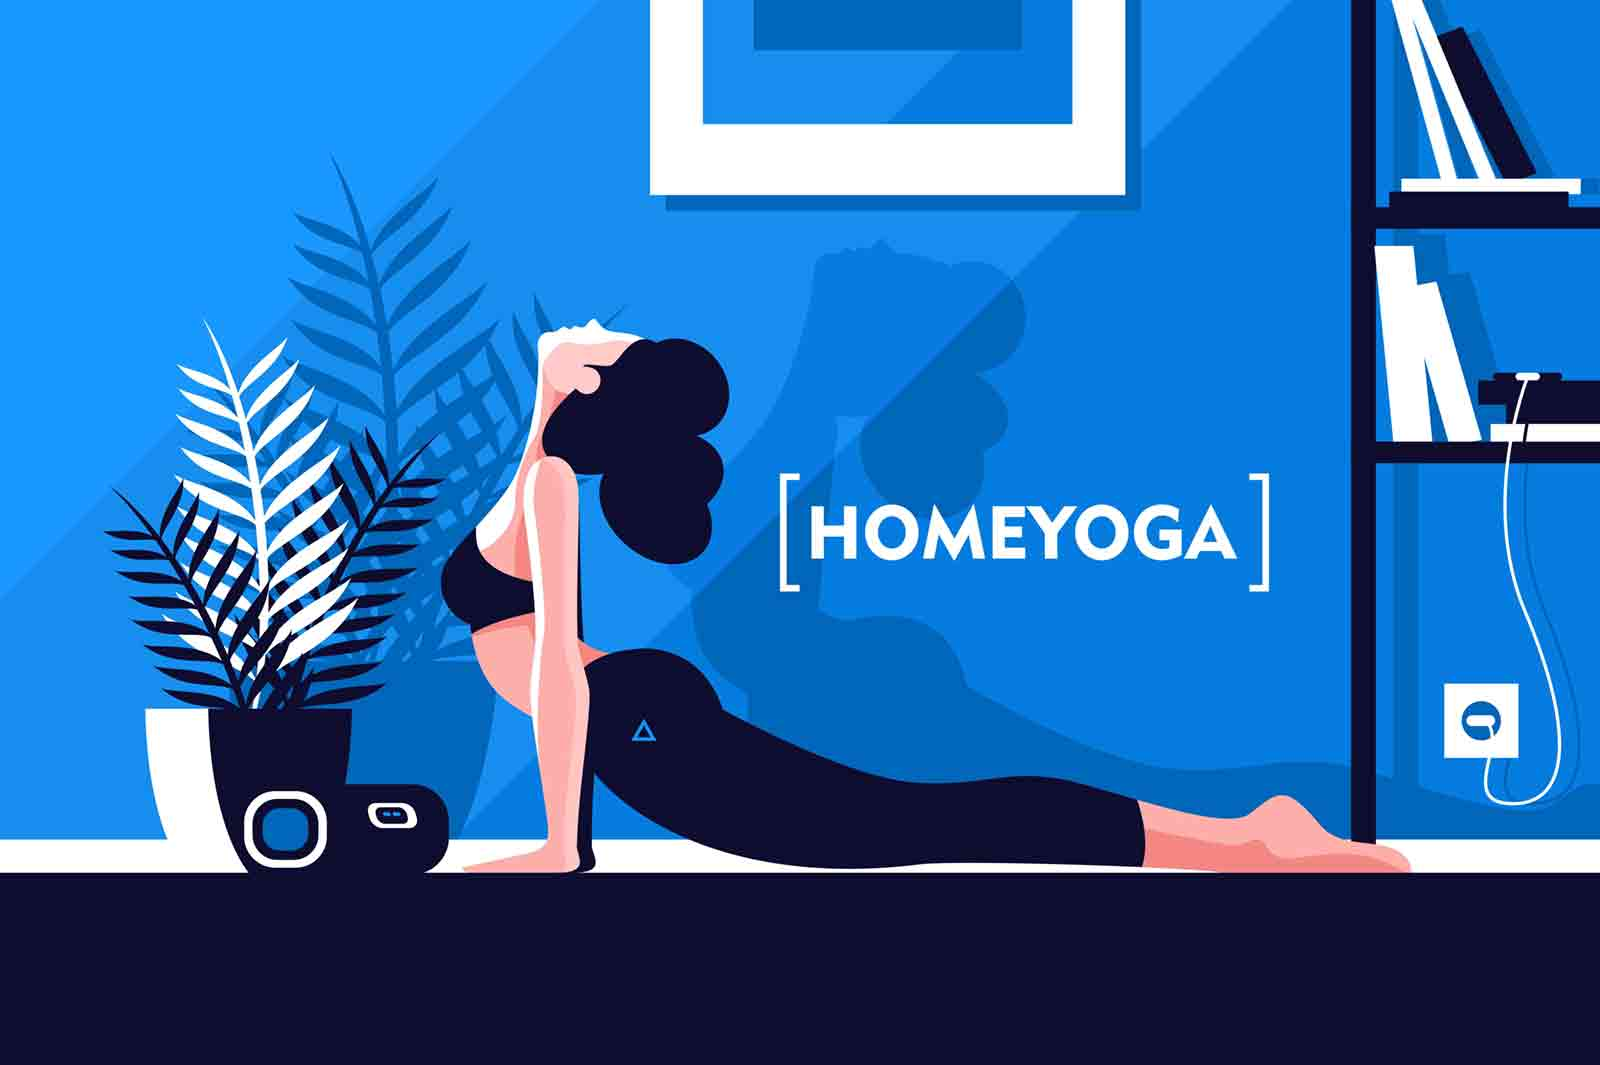 Young beautiful flexible girl doing yoga at home vector illustration. Woman laying in pose and breathing. Healthy lifestyle and home yoga concept in modern interior